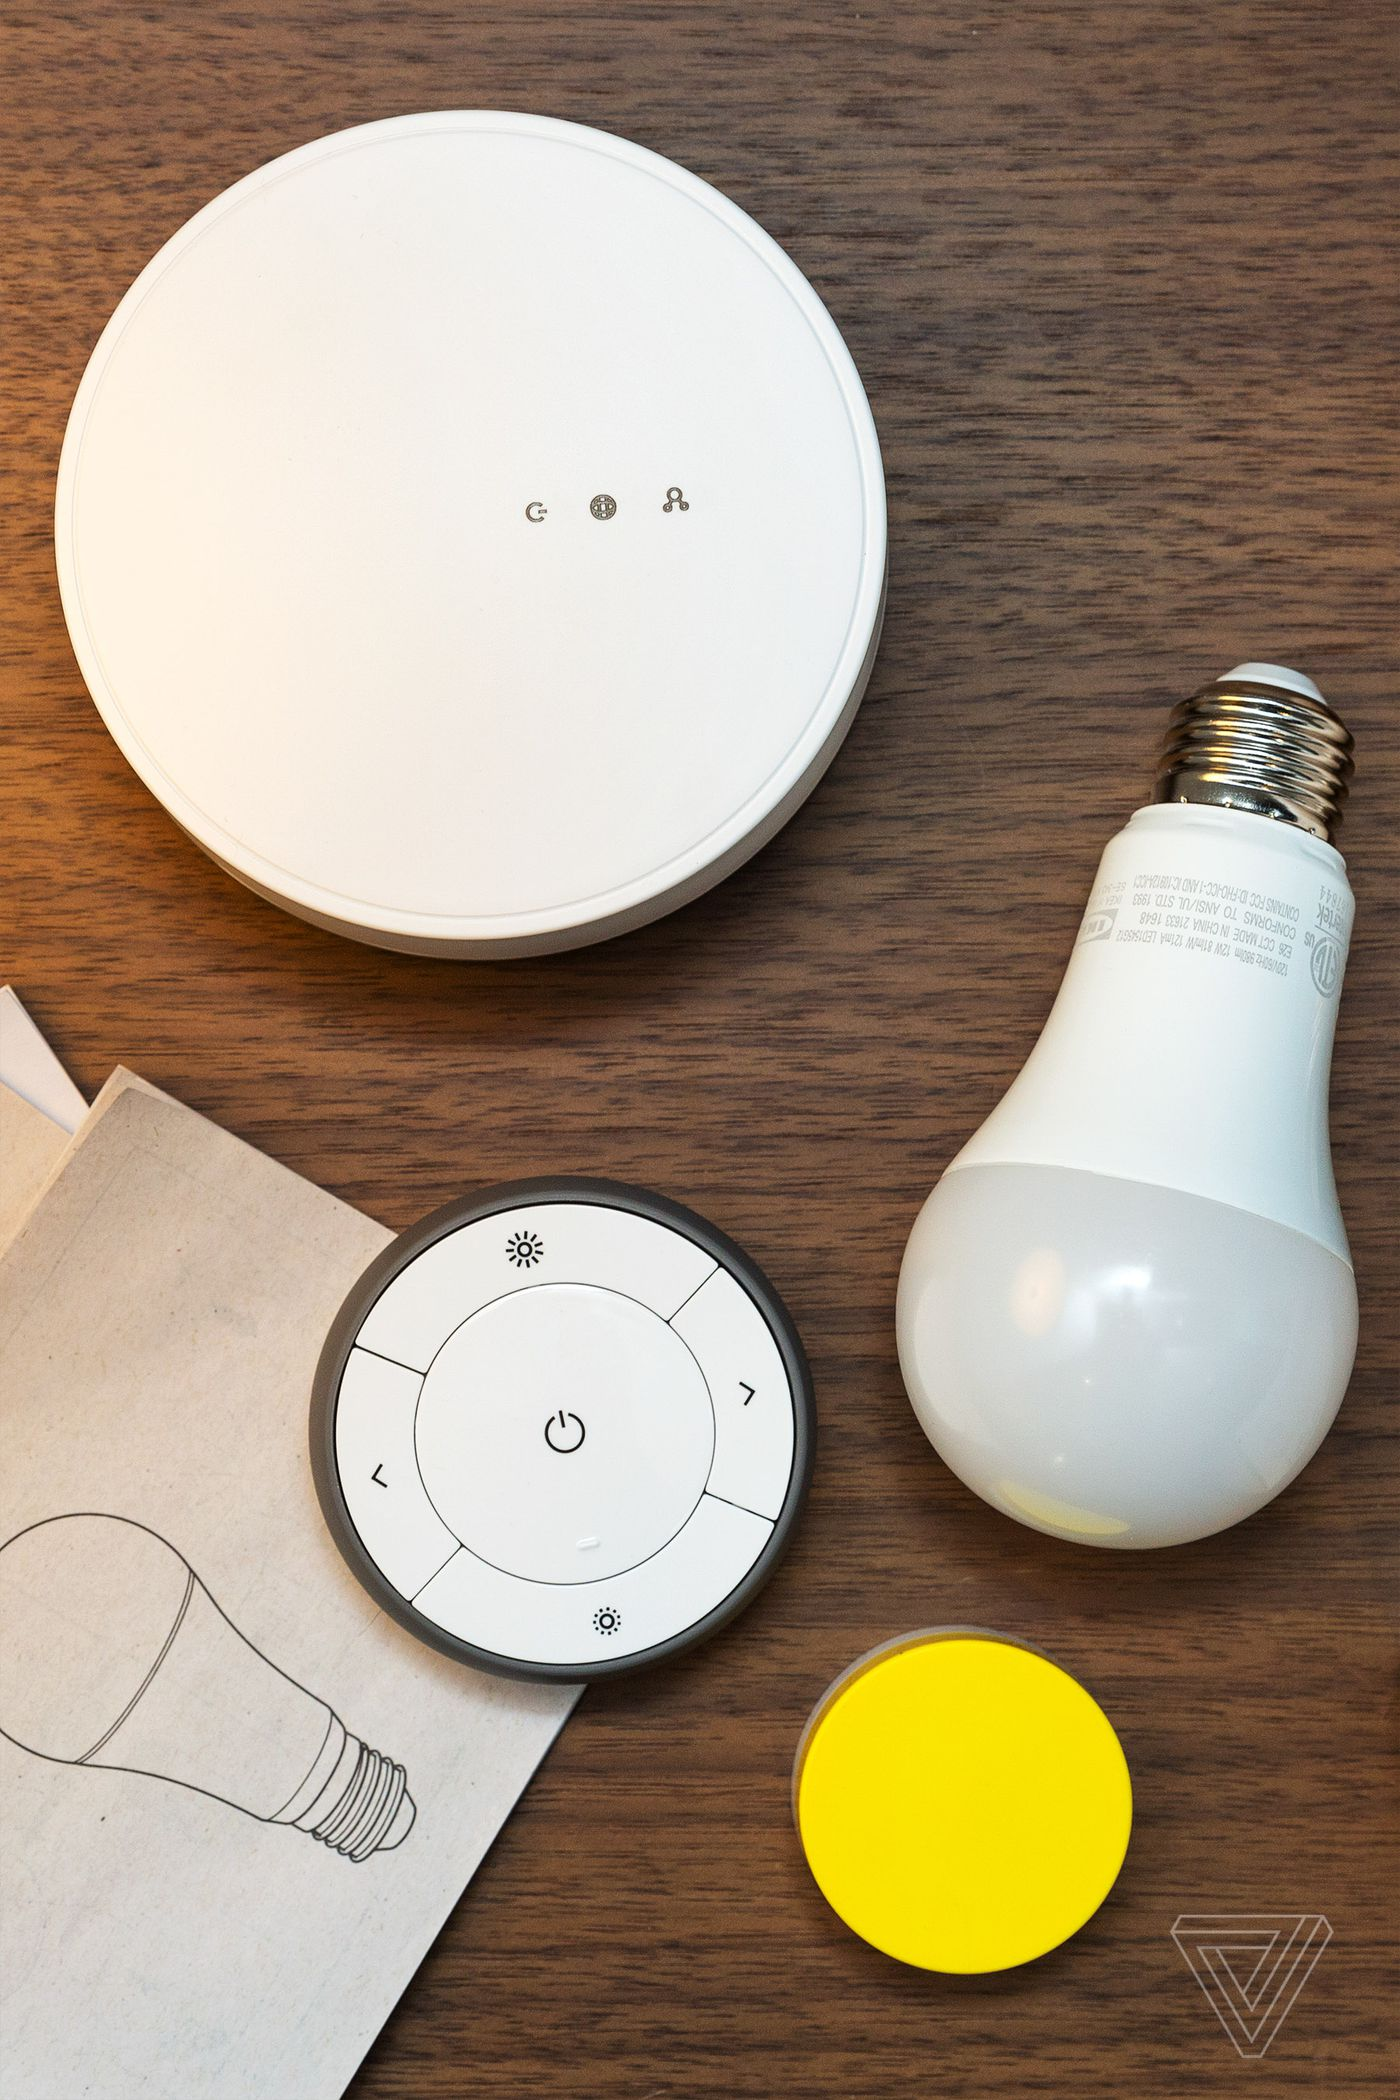 Ikea's smart lights are as stylish and breakable as its furniture